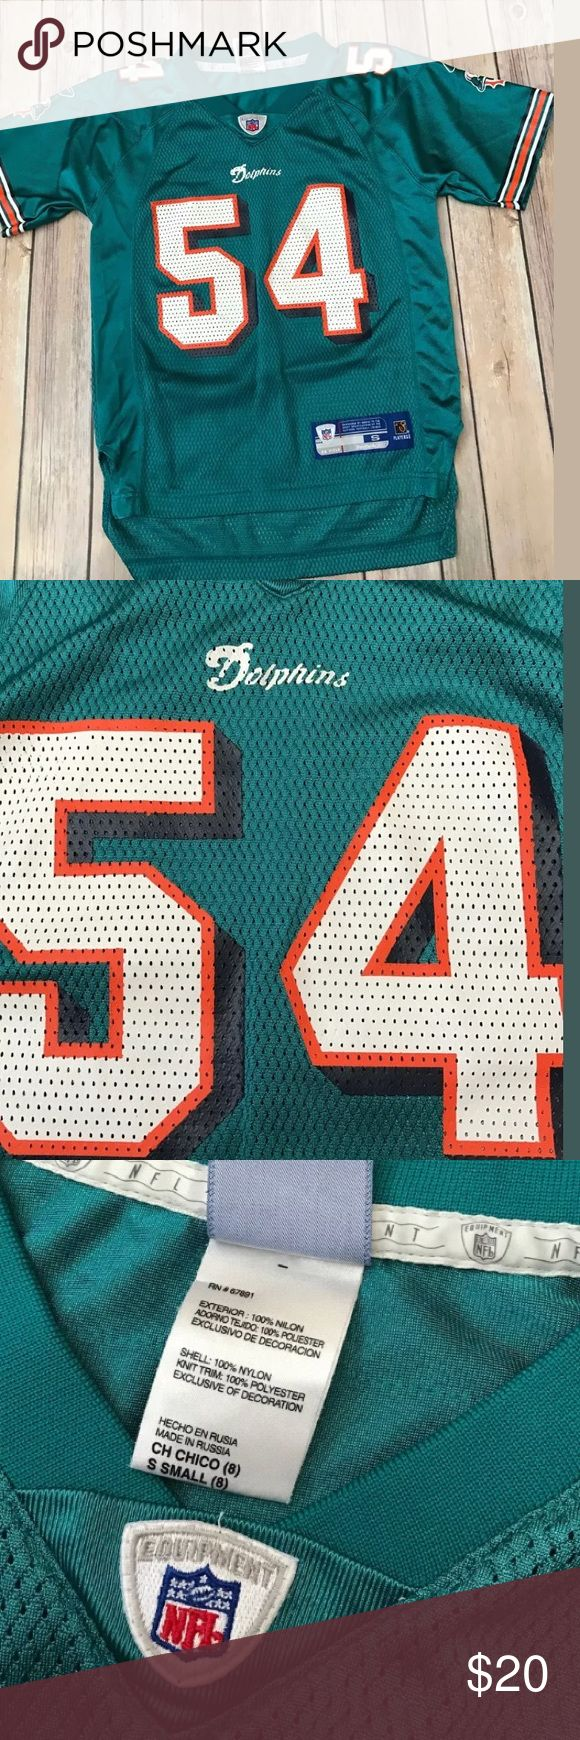 Youth Miami dolphins thomas jersey Sz Small 8 Youth small Reebok NFL Team Apparel athletic sportswear brand Miami Dolphins Zach Thomas #54 football jersey. Overall excellent condition     Smoke/pet free home Reebok Shirts & Tops